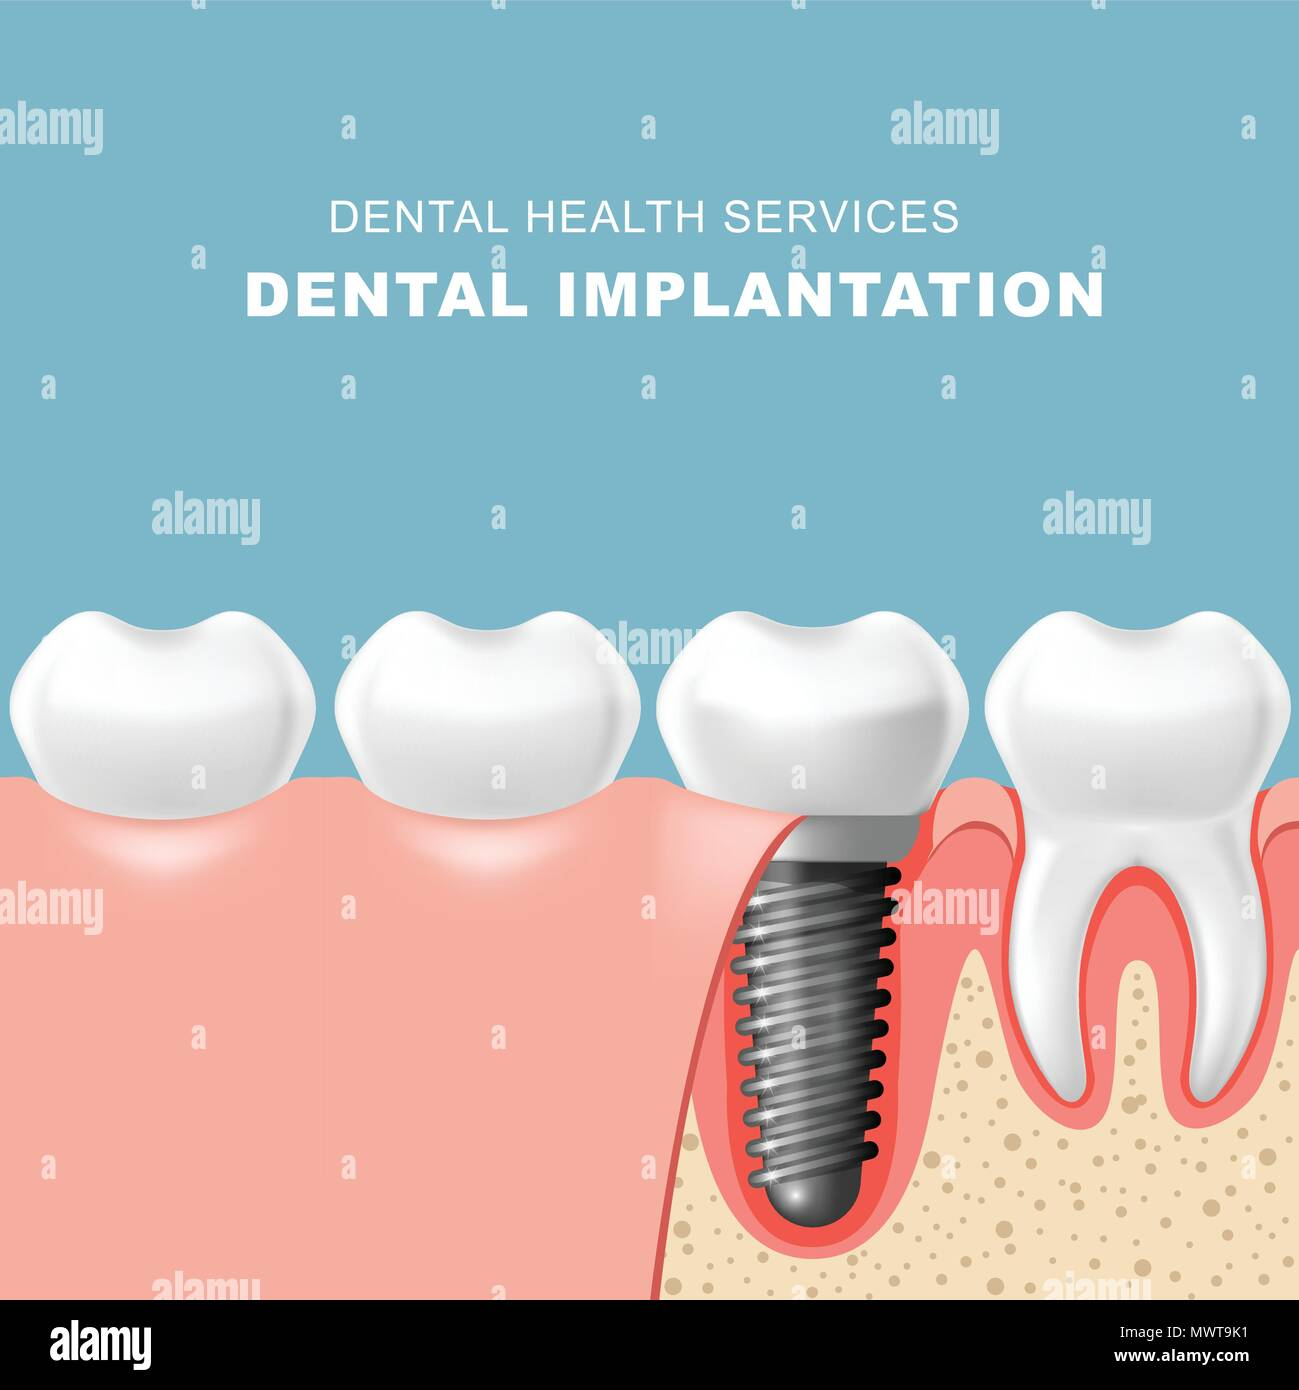 Teeth and dental implantat inserted into gum - tooth implantation - Stock Image